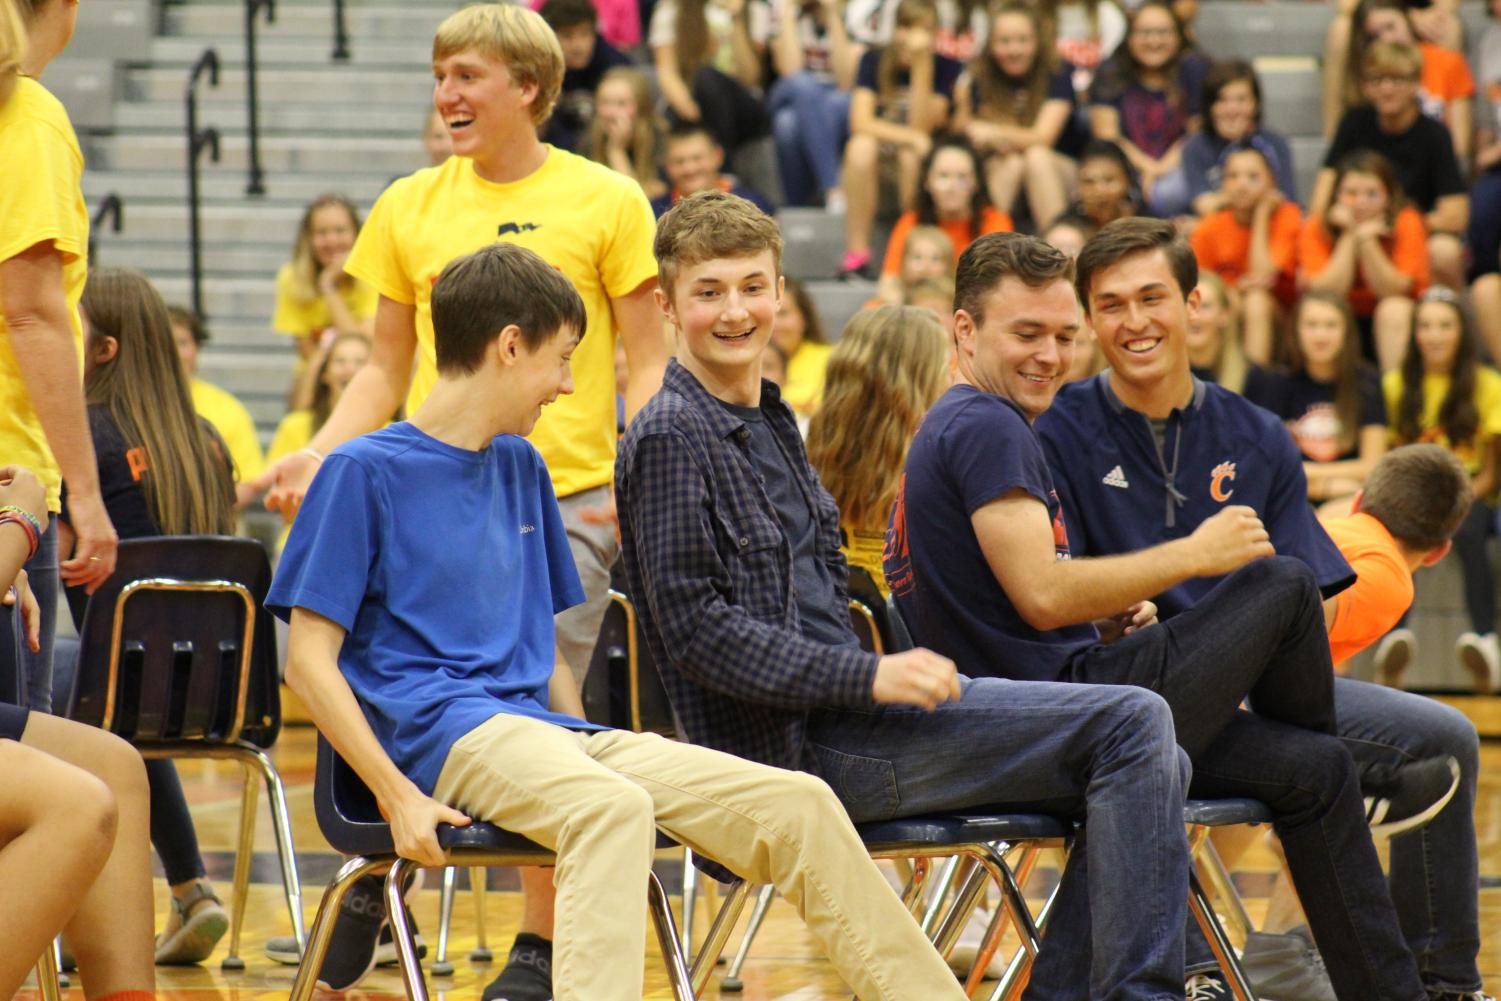 New Teachers, Mr. Coleman and Mr. Towers join in on the fun during an epic battle of musical chairs while attending our homecoming pep rally.